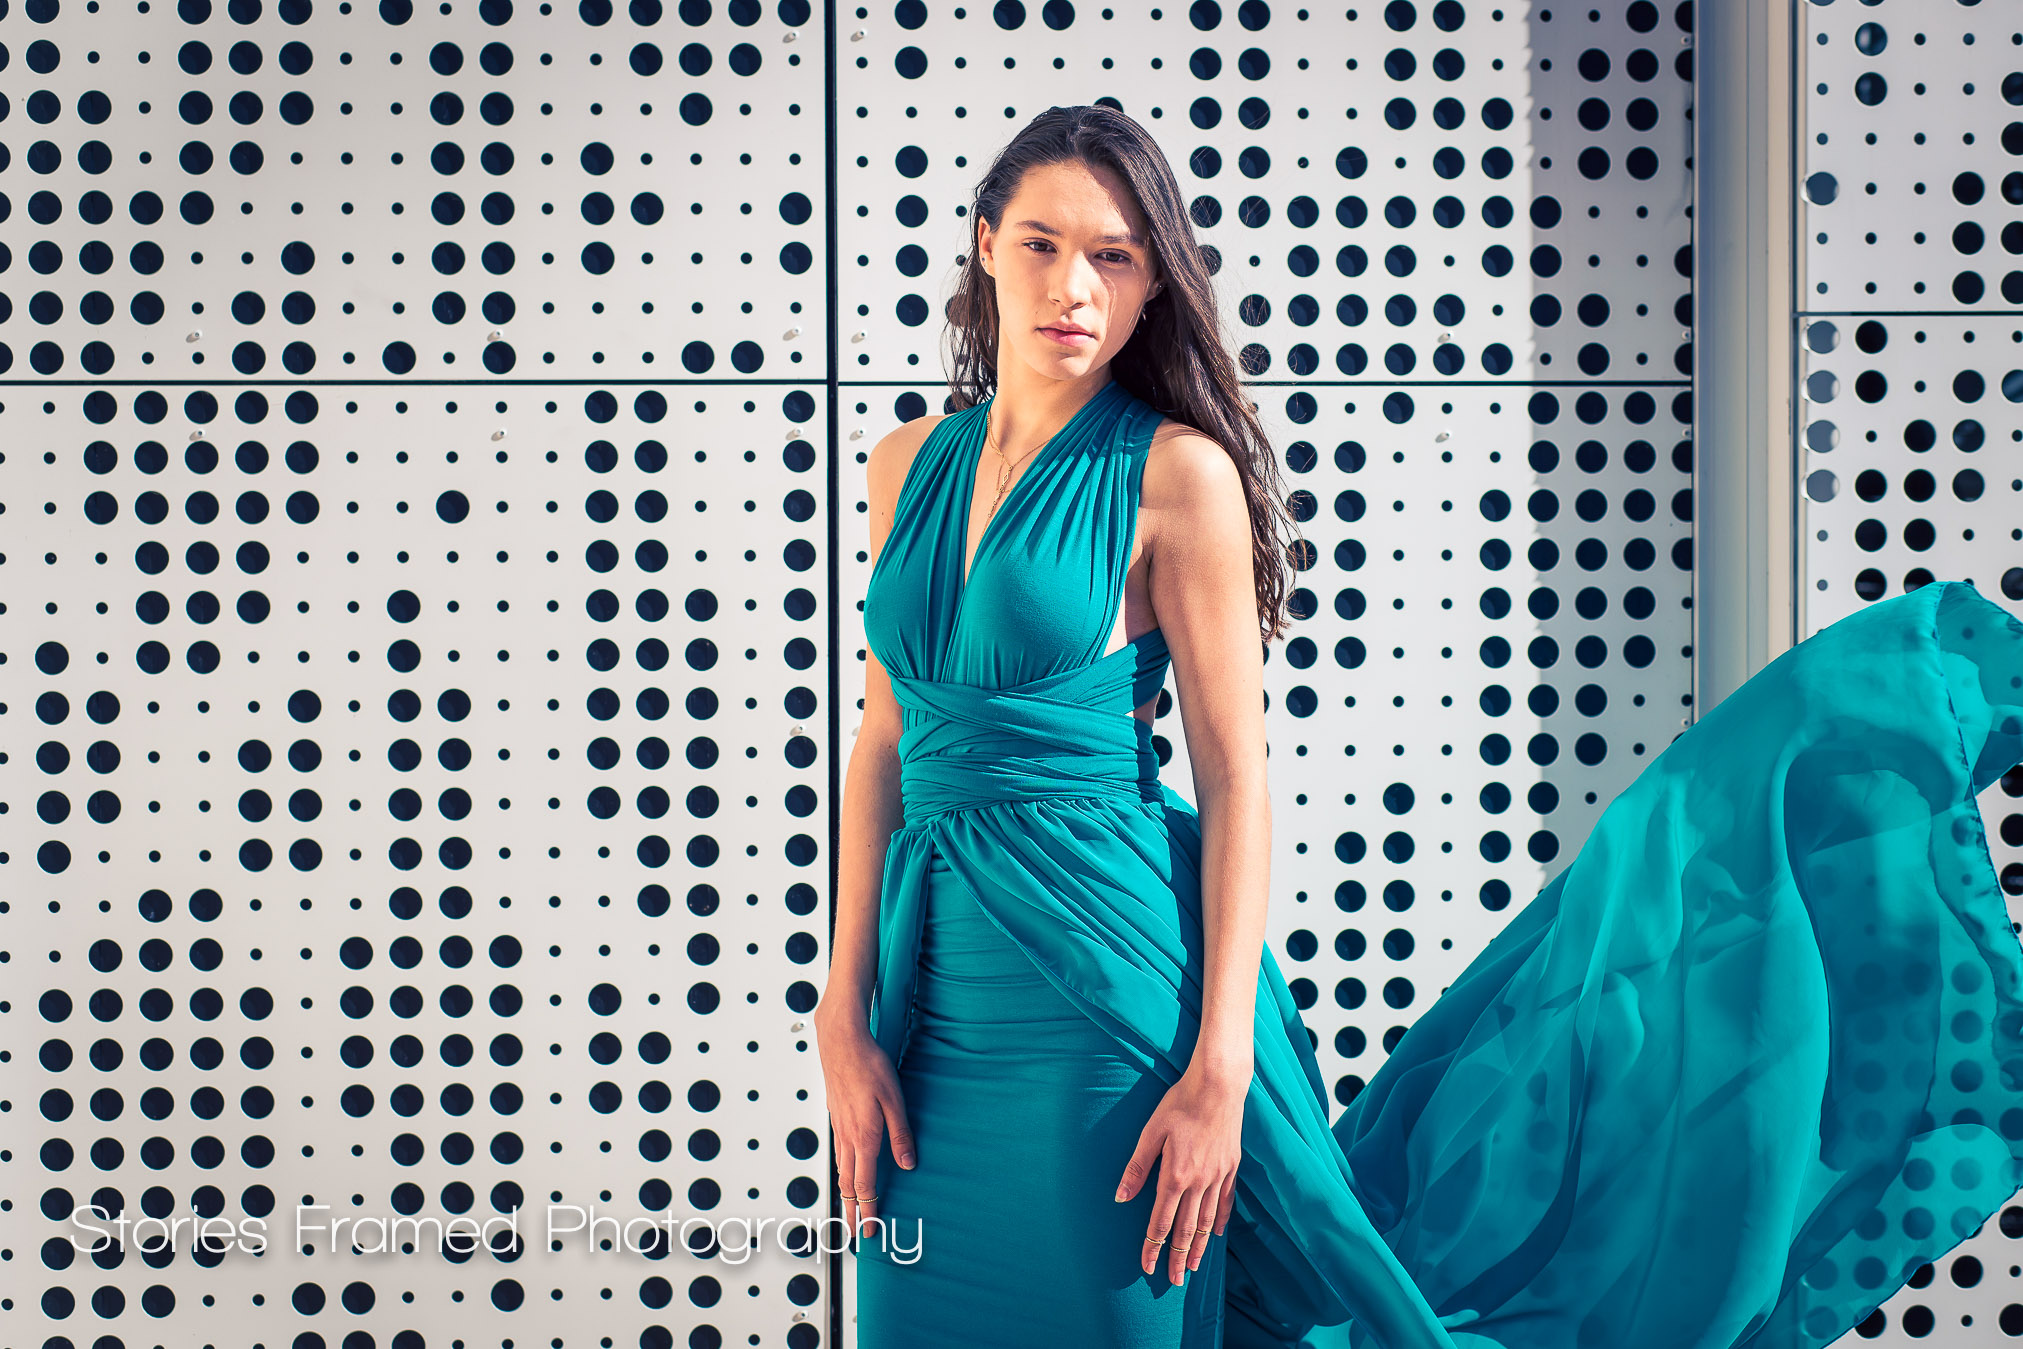 Imaging 2017 | senior girl portrait teal gown white wall